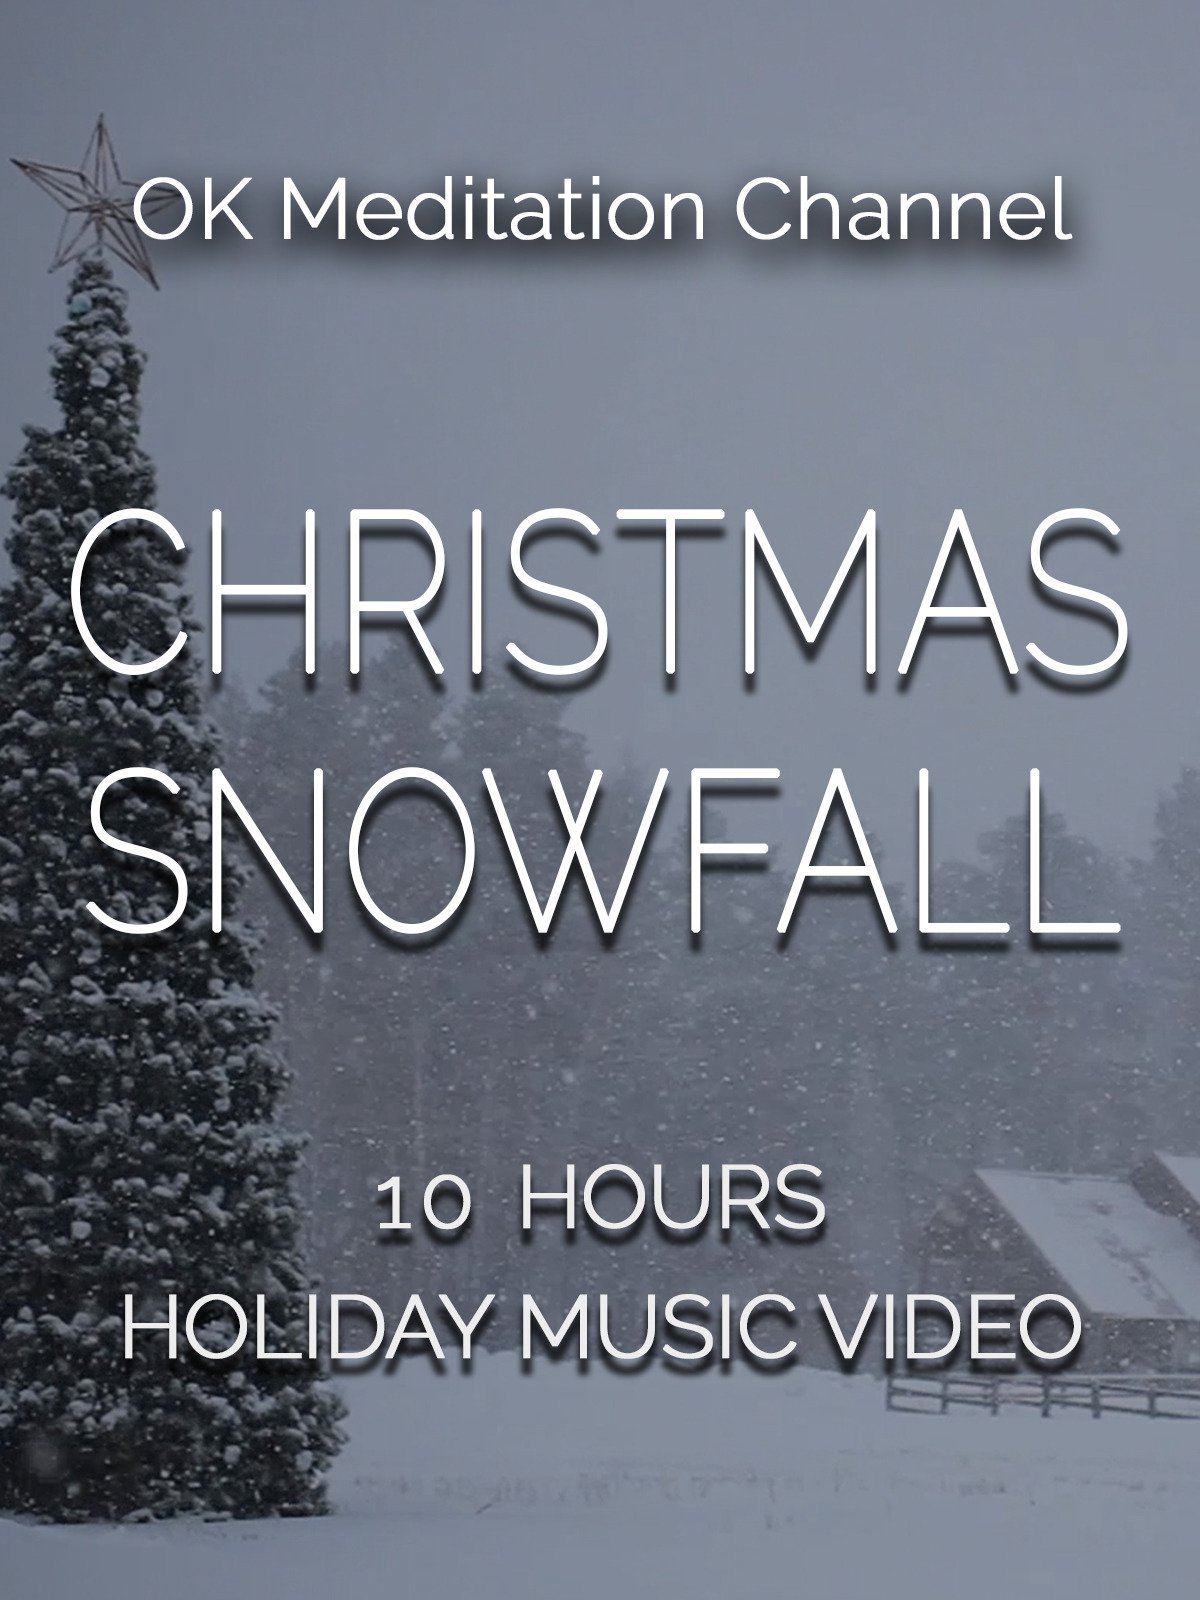 Christmas snowfall, 10 hours holiday music video